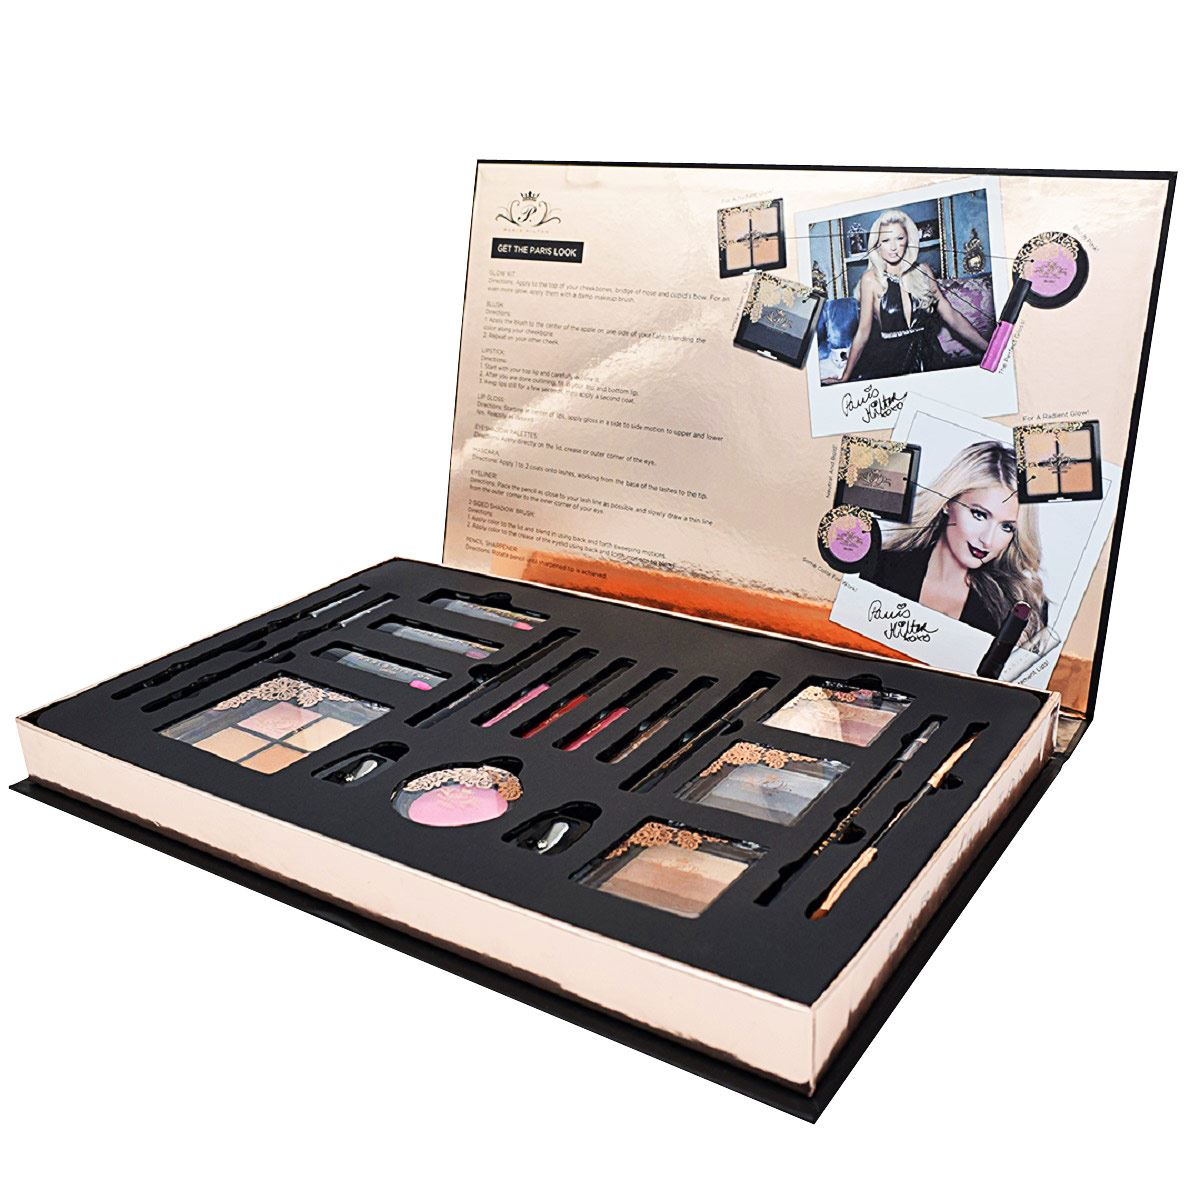 Estuche paris hilton make up big beauty box set  - Sanborns